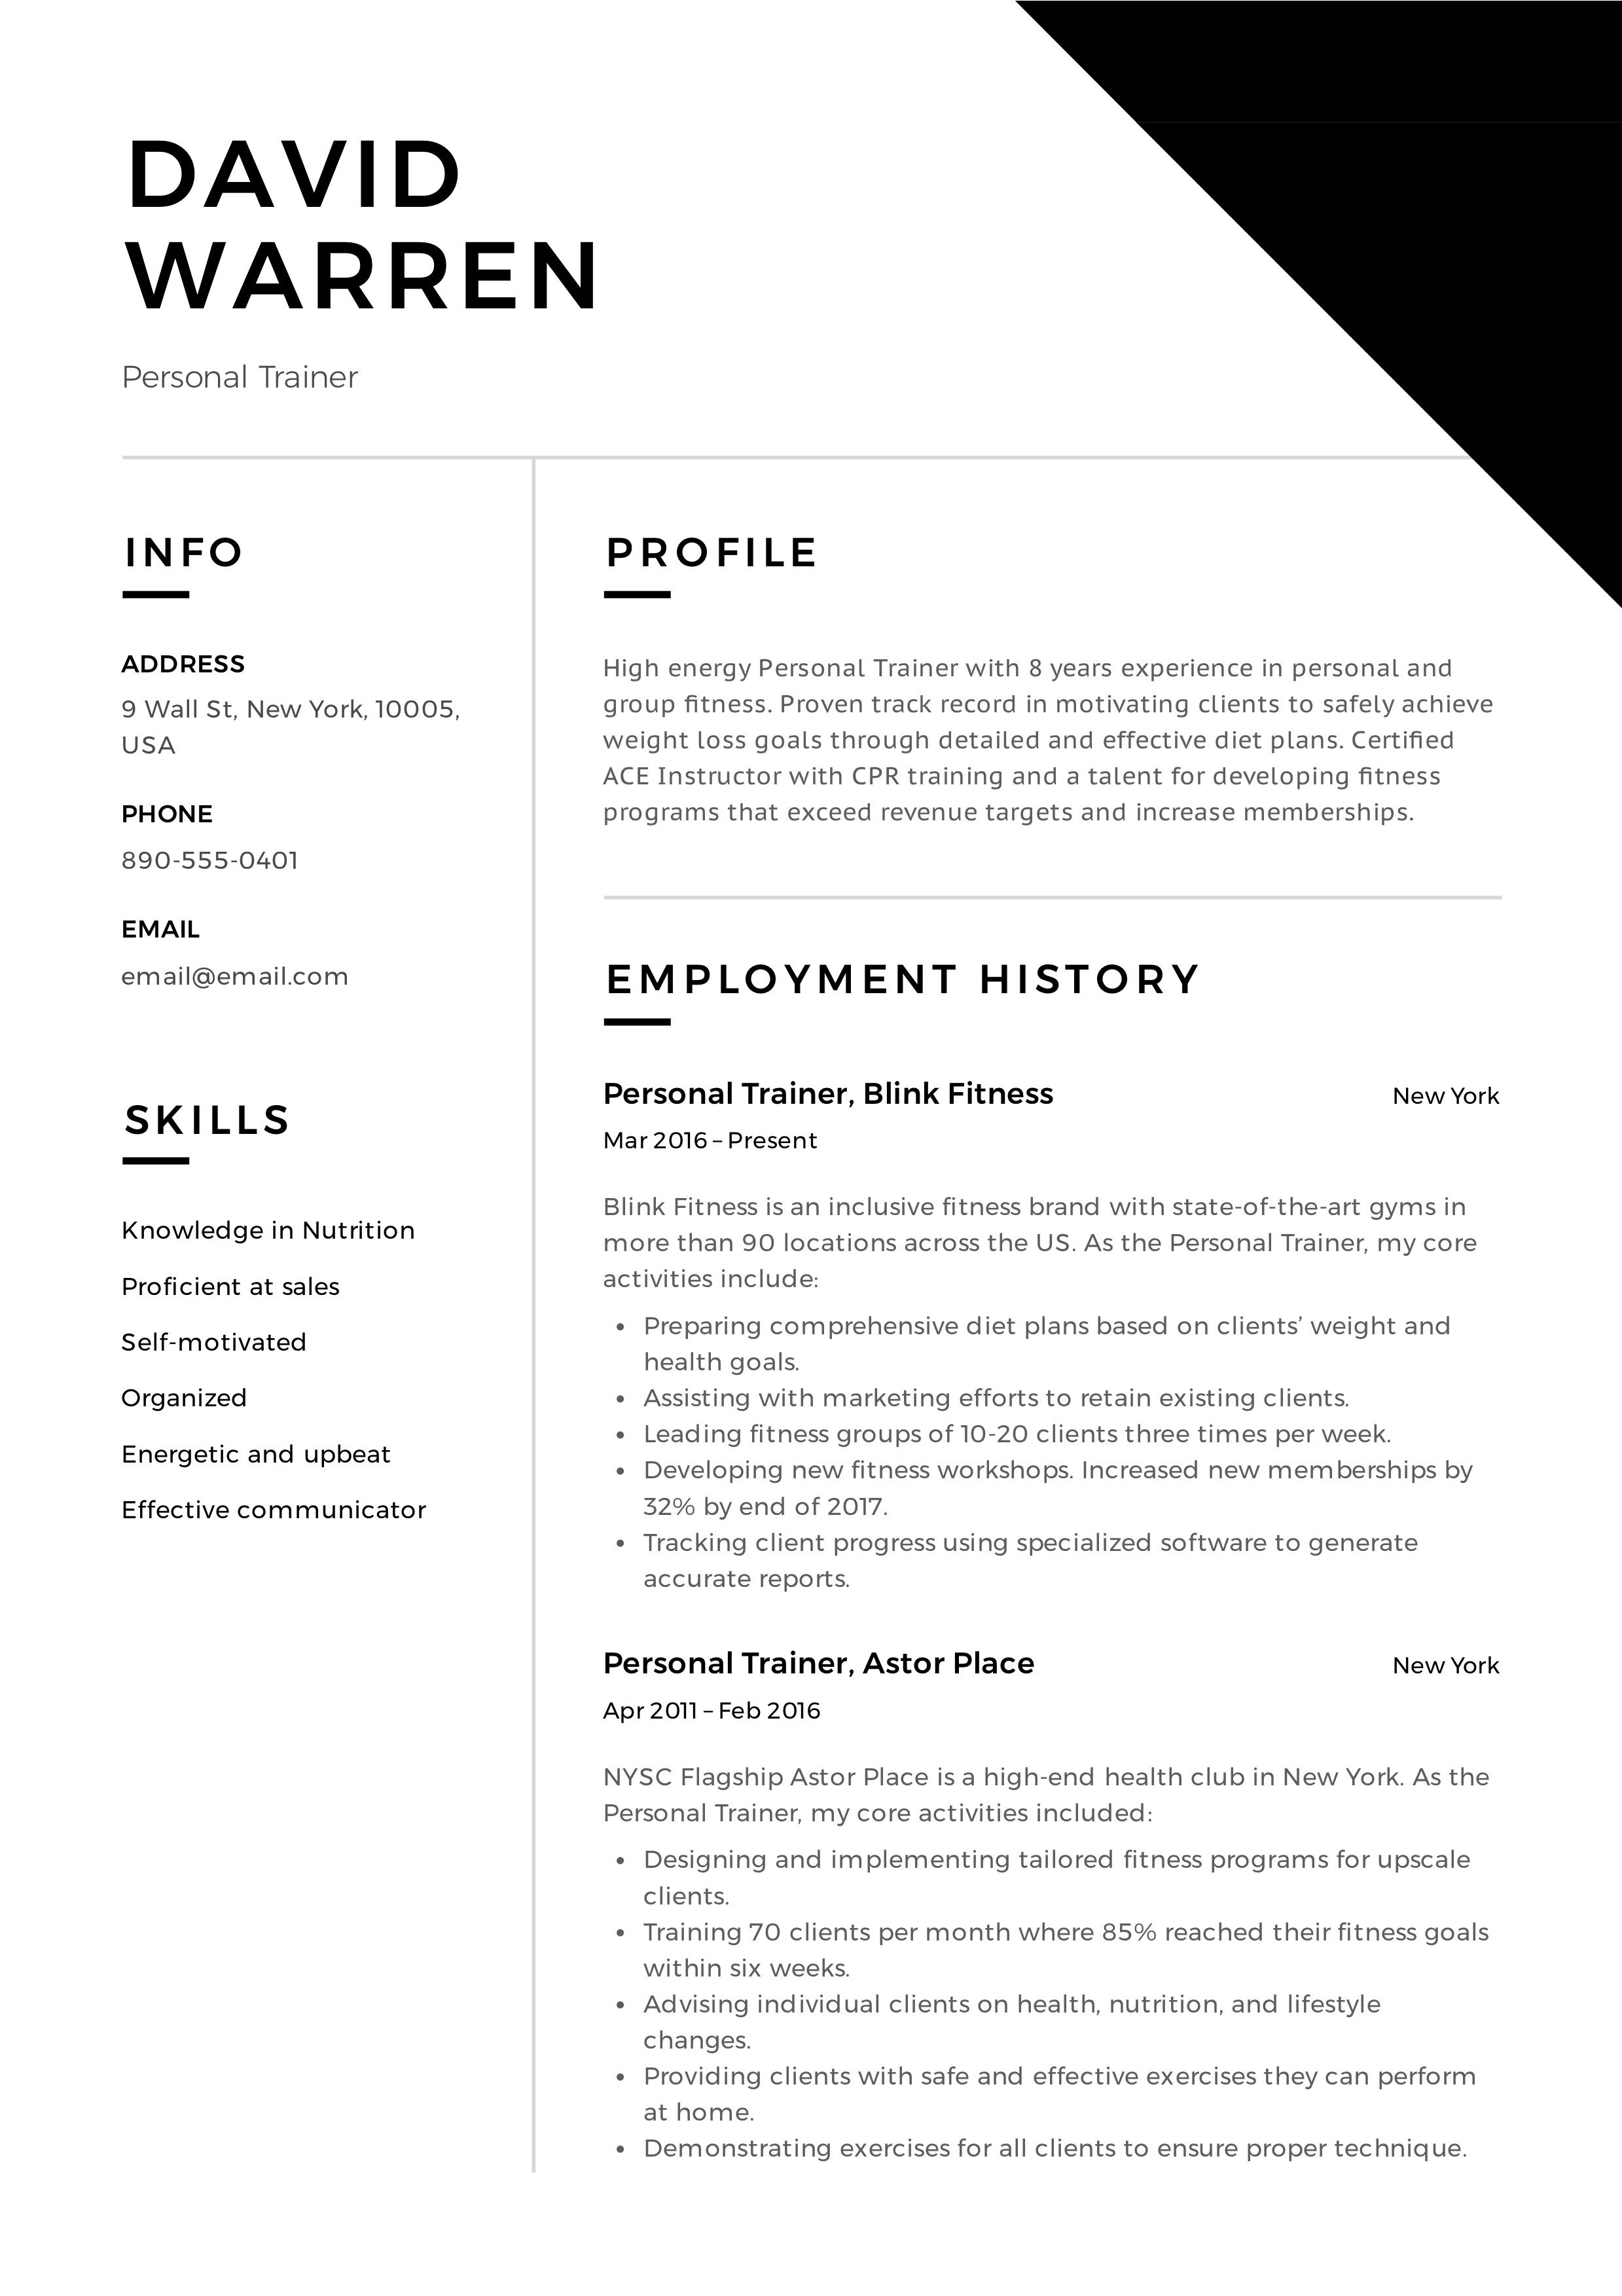 Personal Trainer Resume Event planner resume